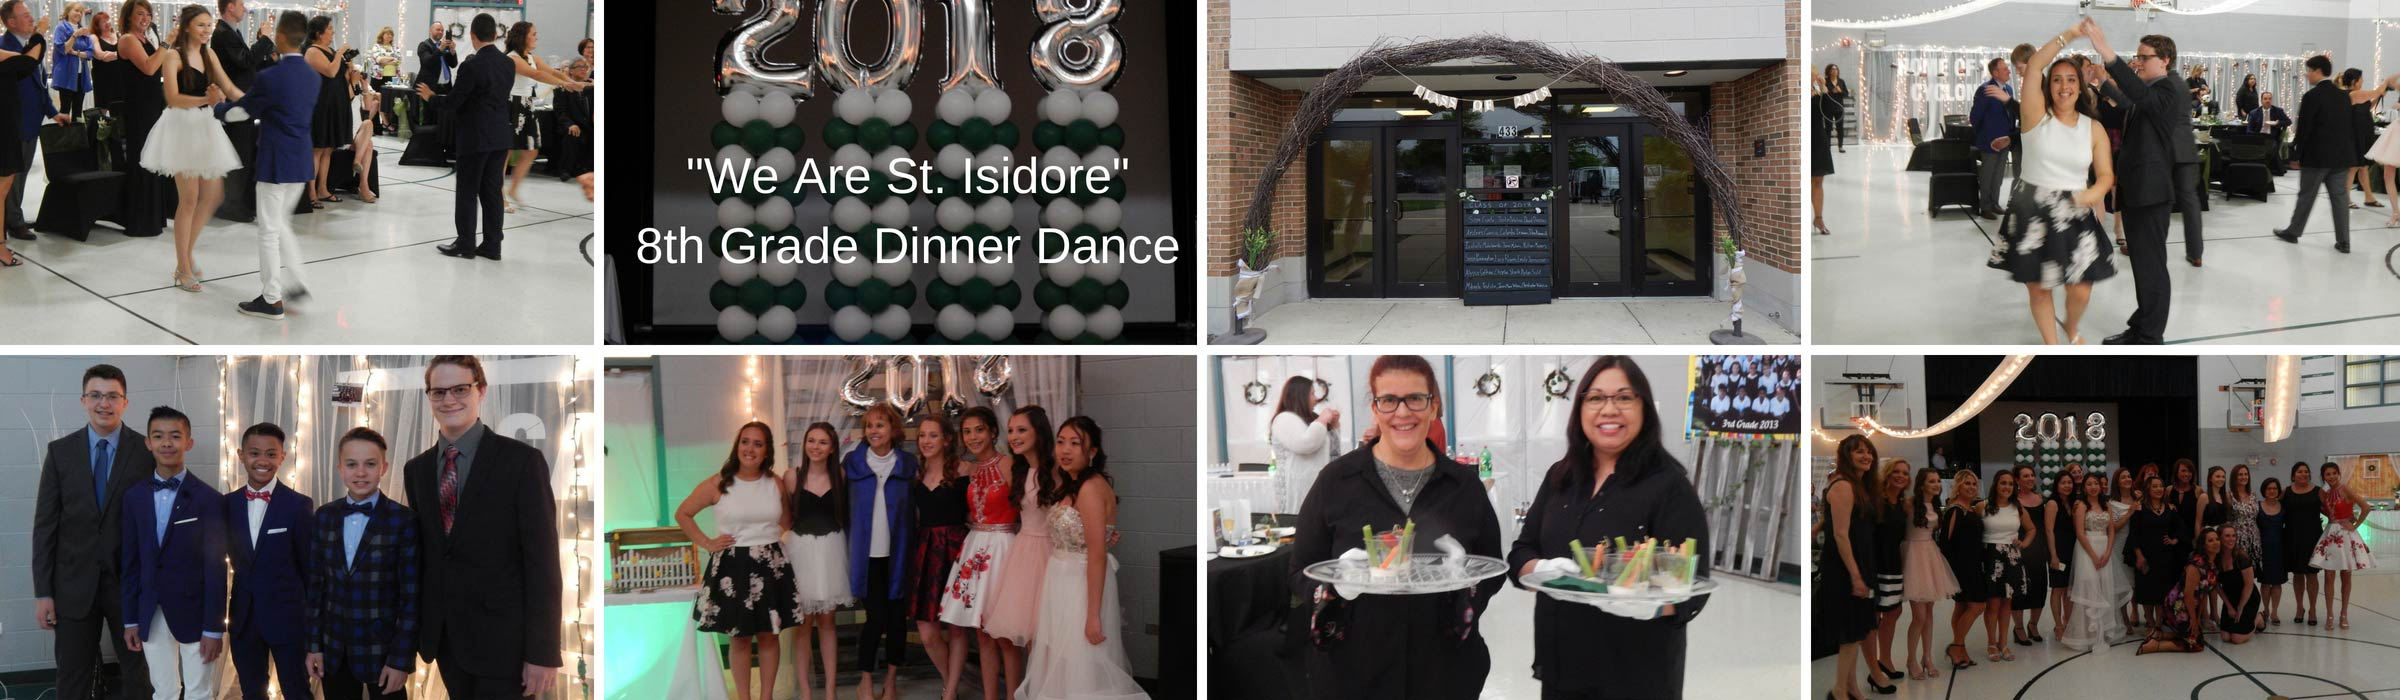 _We-Are-St.-Isidore_8th-Grade-Dinner-Dance